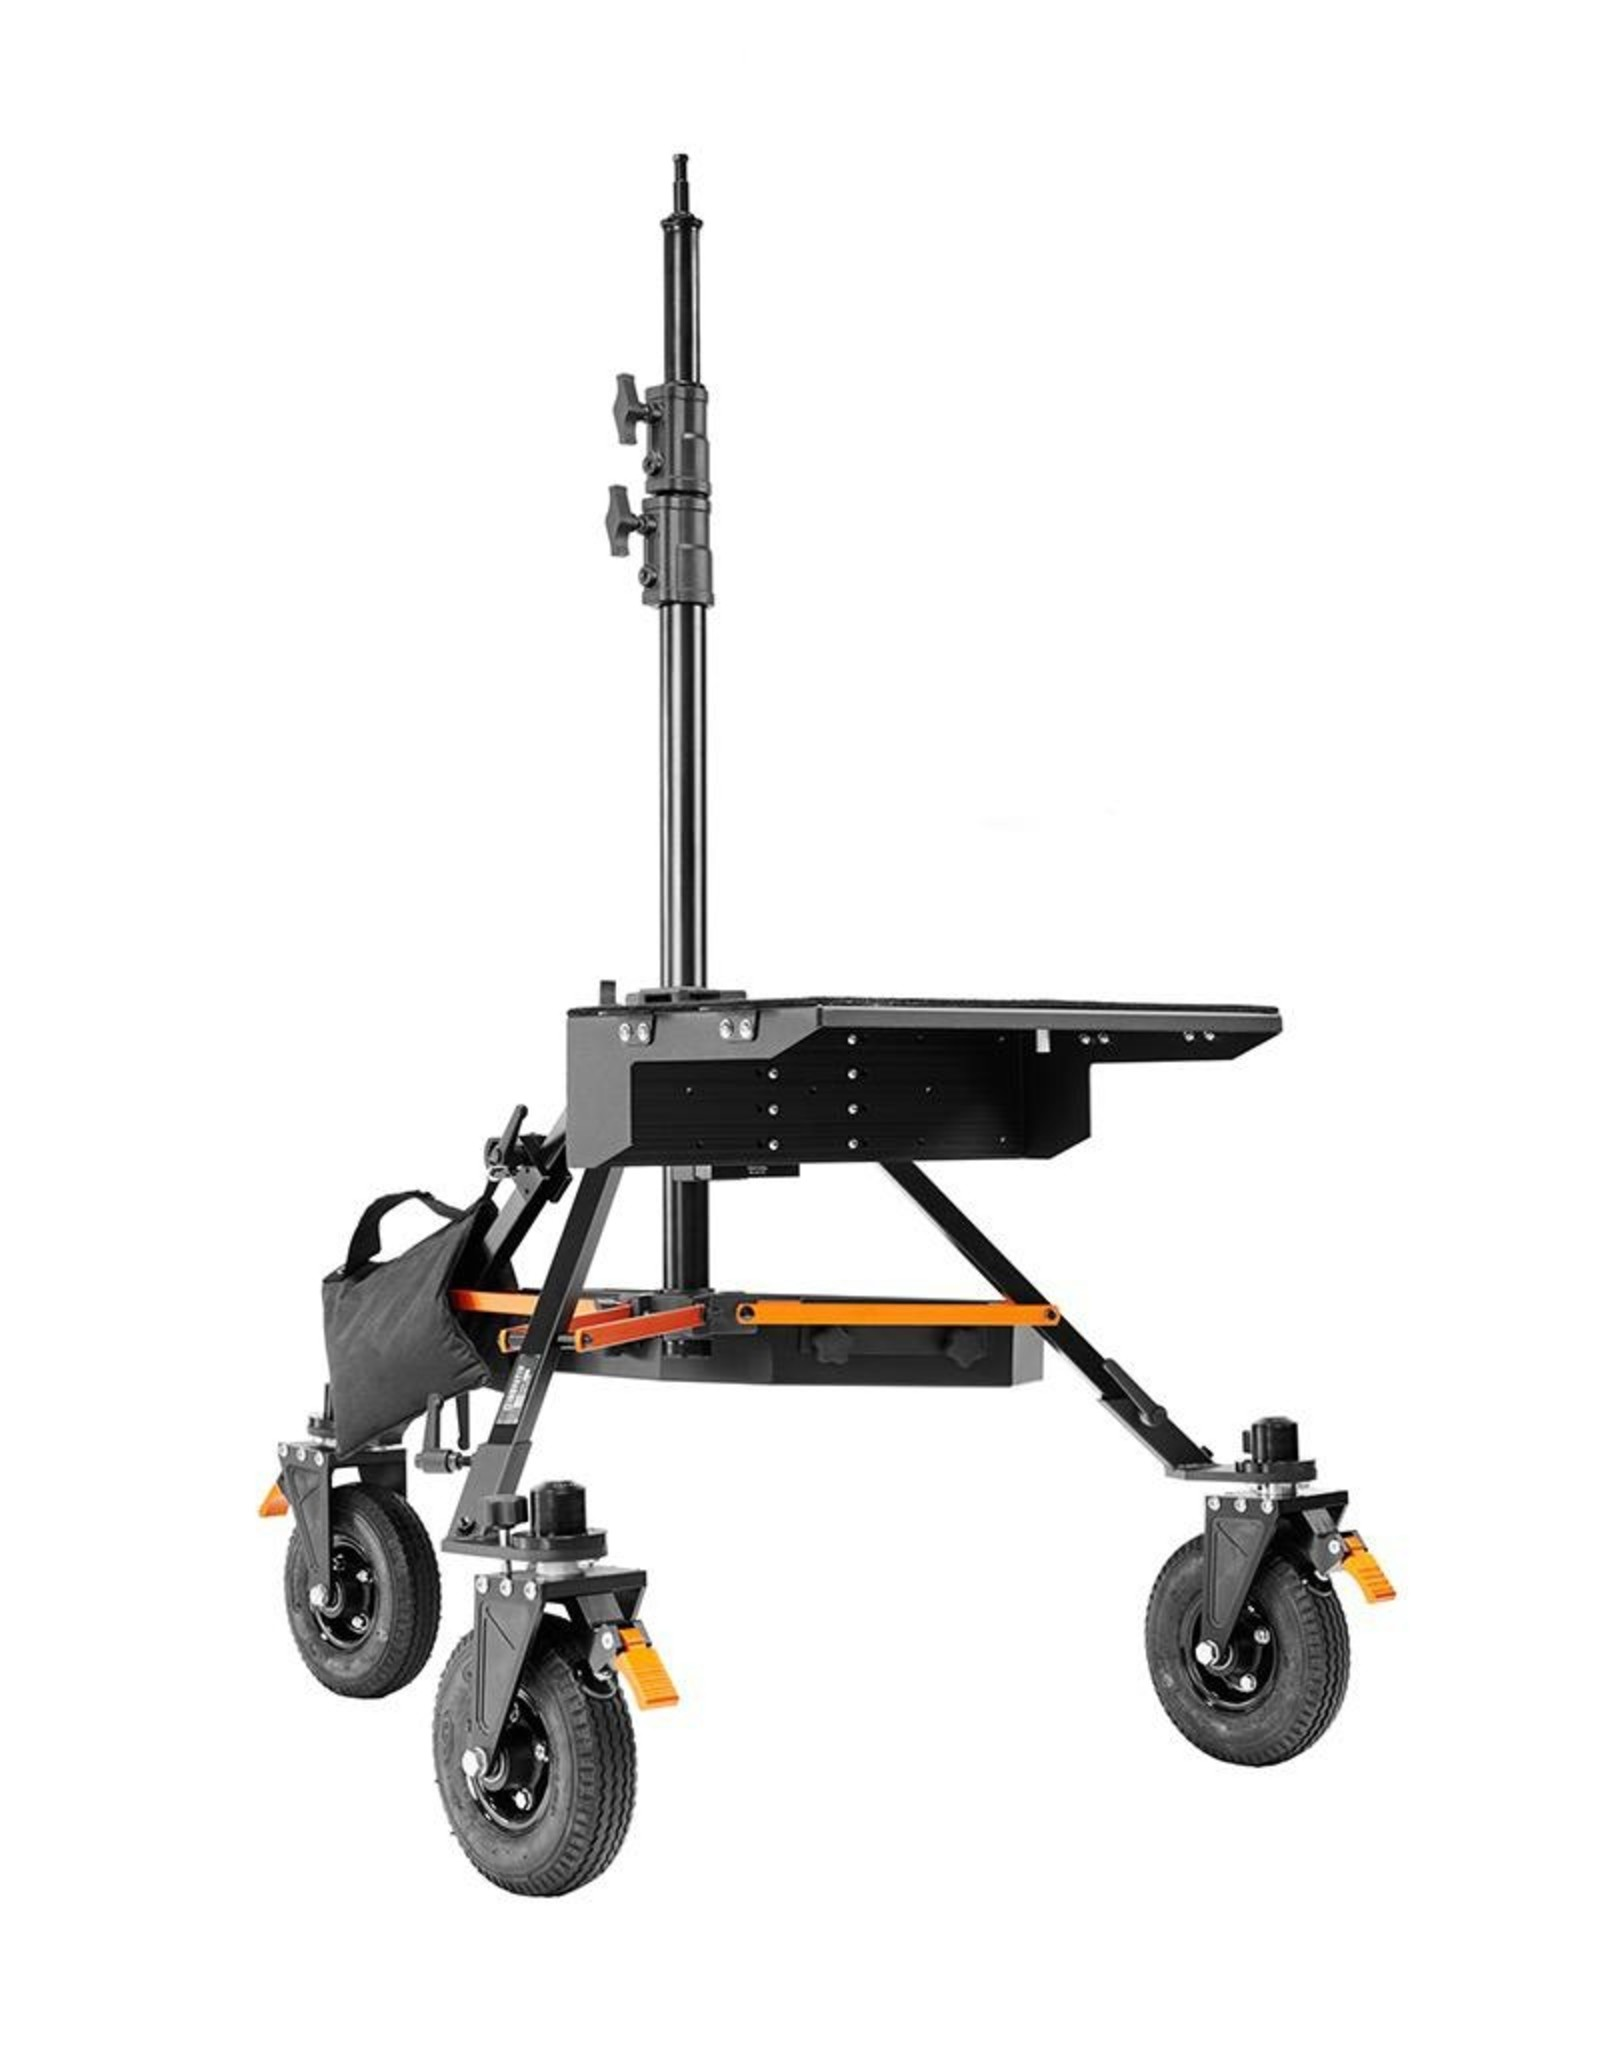 Inovativ Inovativ AXIS Stabilizer Station. Includes the AXIS Stand + Wheel System, Case Platform + Tie Down Anchors, Trough and Weight Hanger + 25lb Weight Bag.